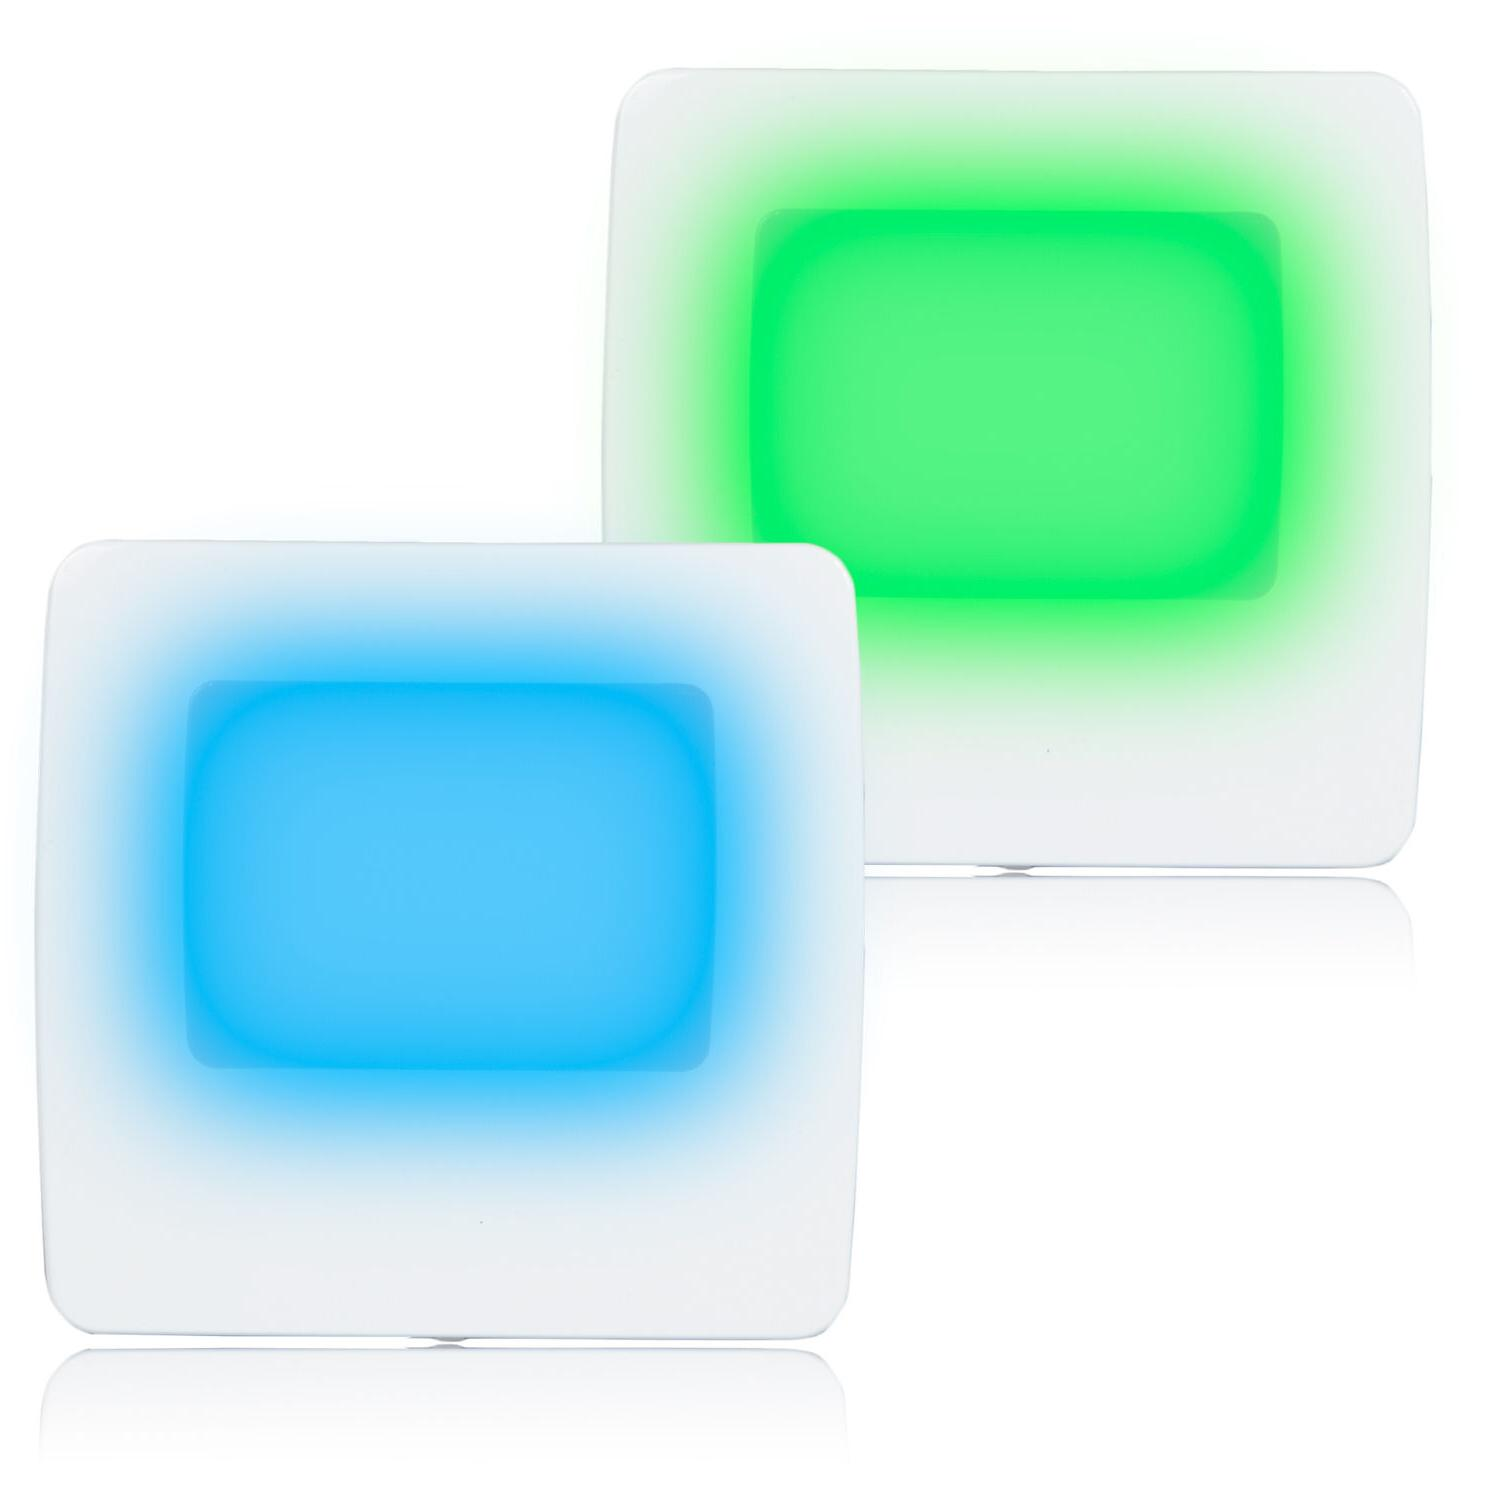 Maxxima Green / Blue LED Night Light with Switch